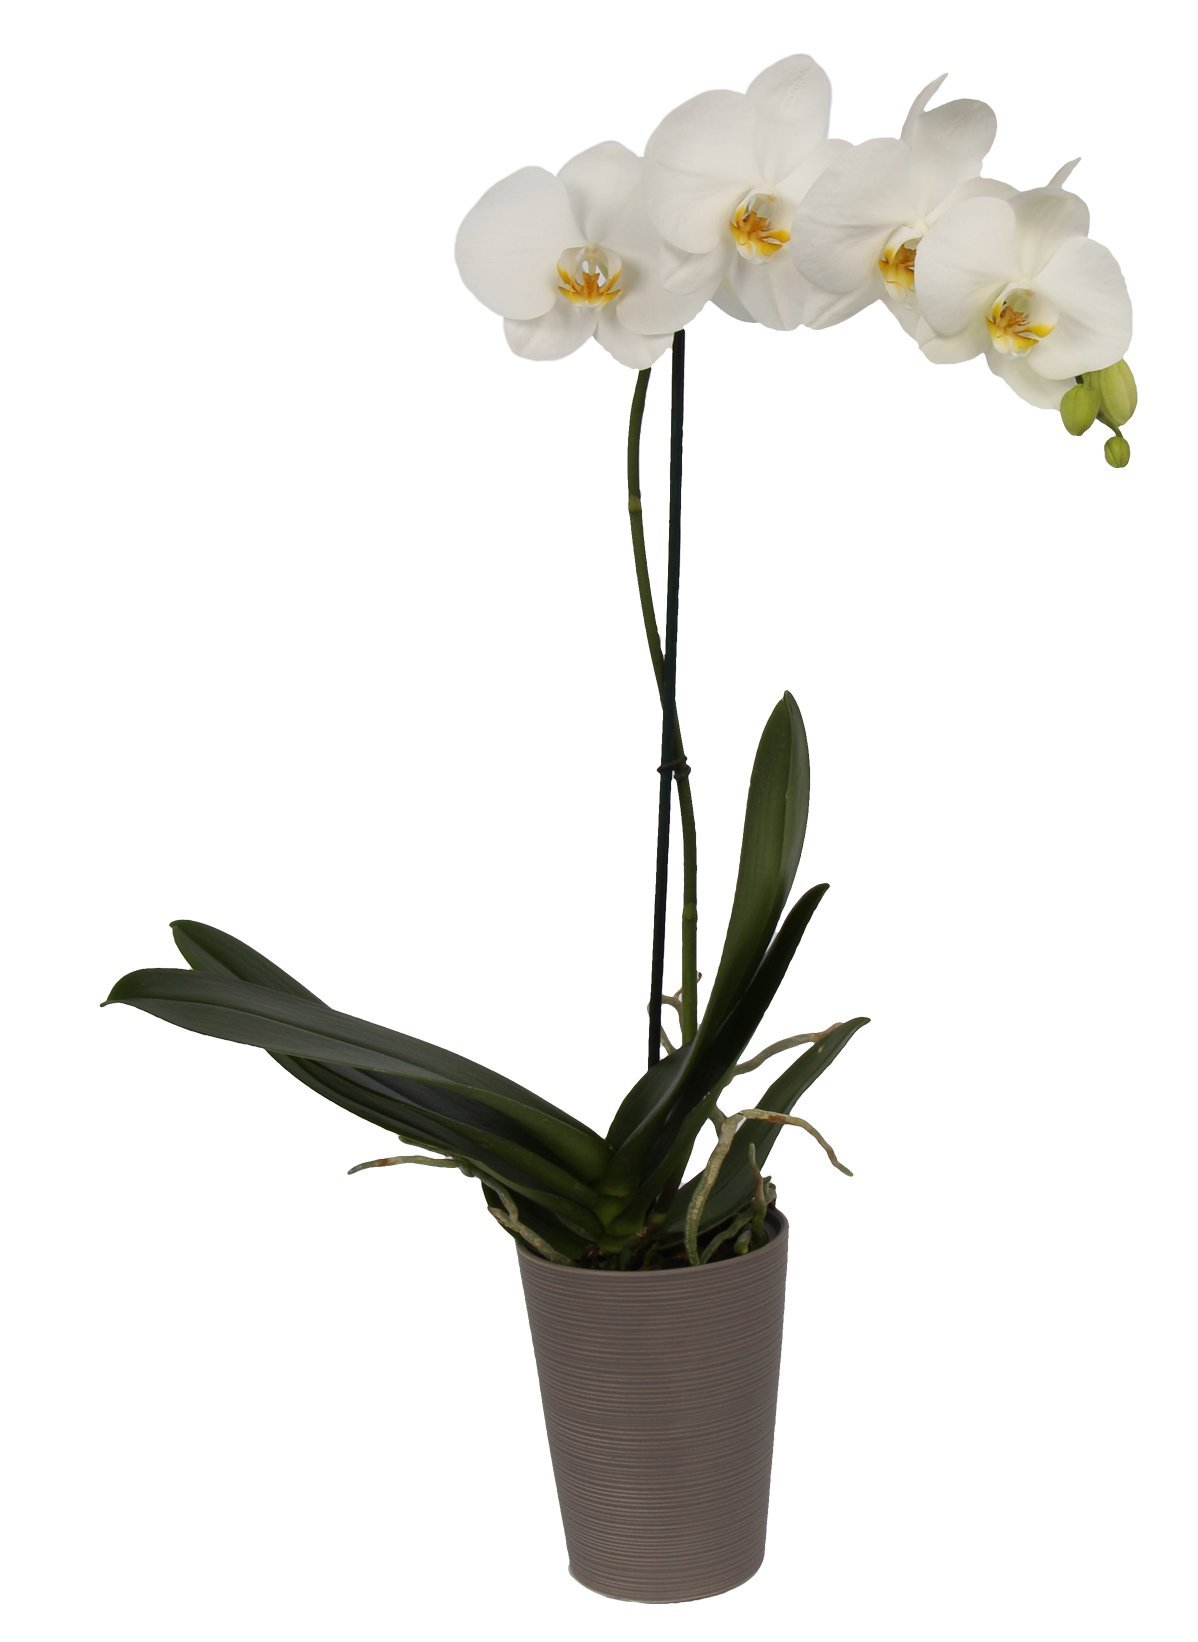 Color Orchids AMZ1101DGY1W Live Blooming Single Stem Phalaenopsis Orchid Plant in Ceramic Pot, 20''-24'' Tall, White Blooms by Color Orchids